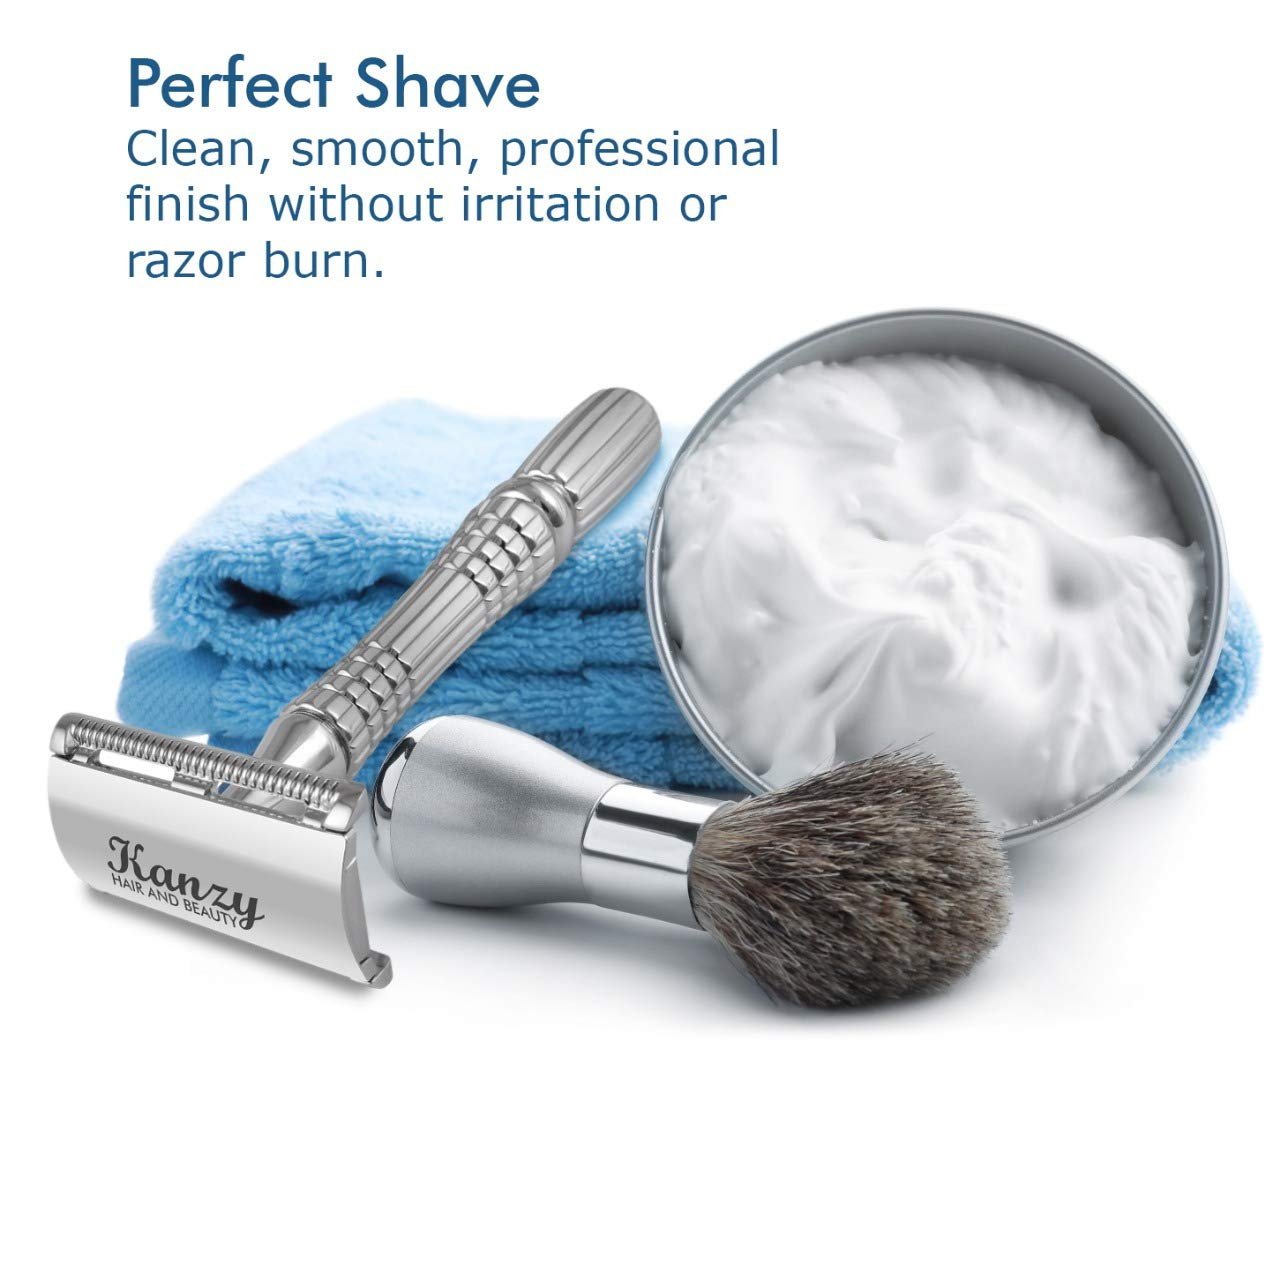 KANZY Double Edge Safety Razor | High quality Shaving KIT, classic Razor for men and women for the perfect shave.